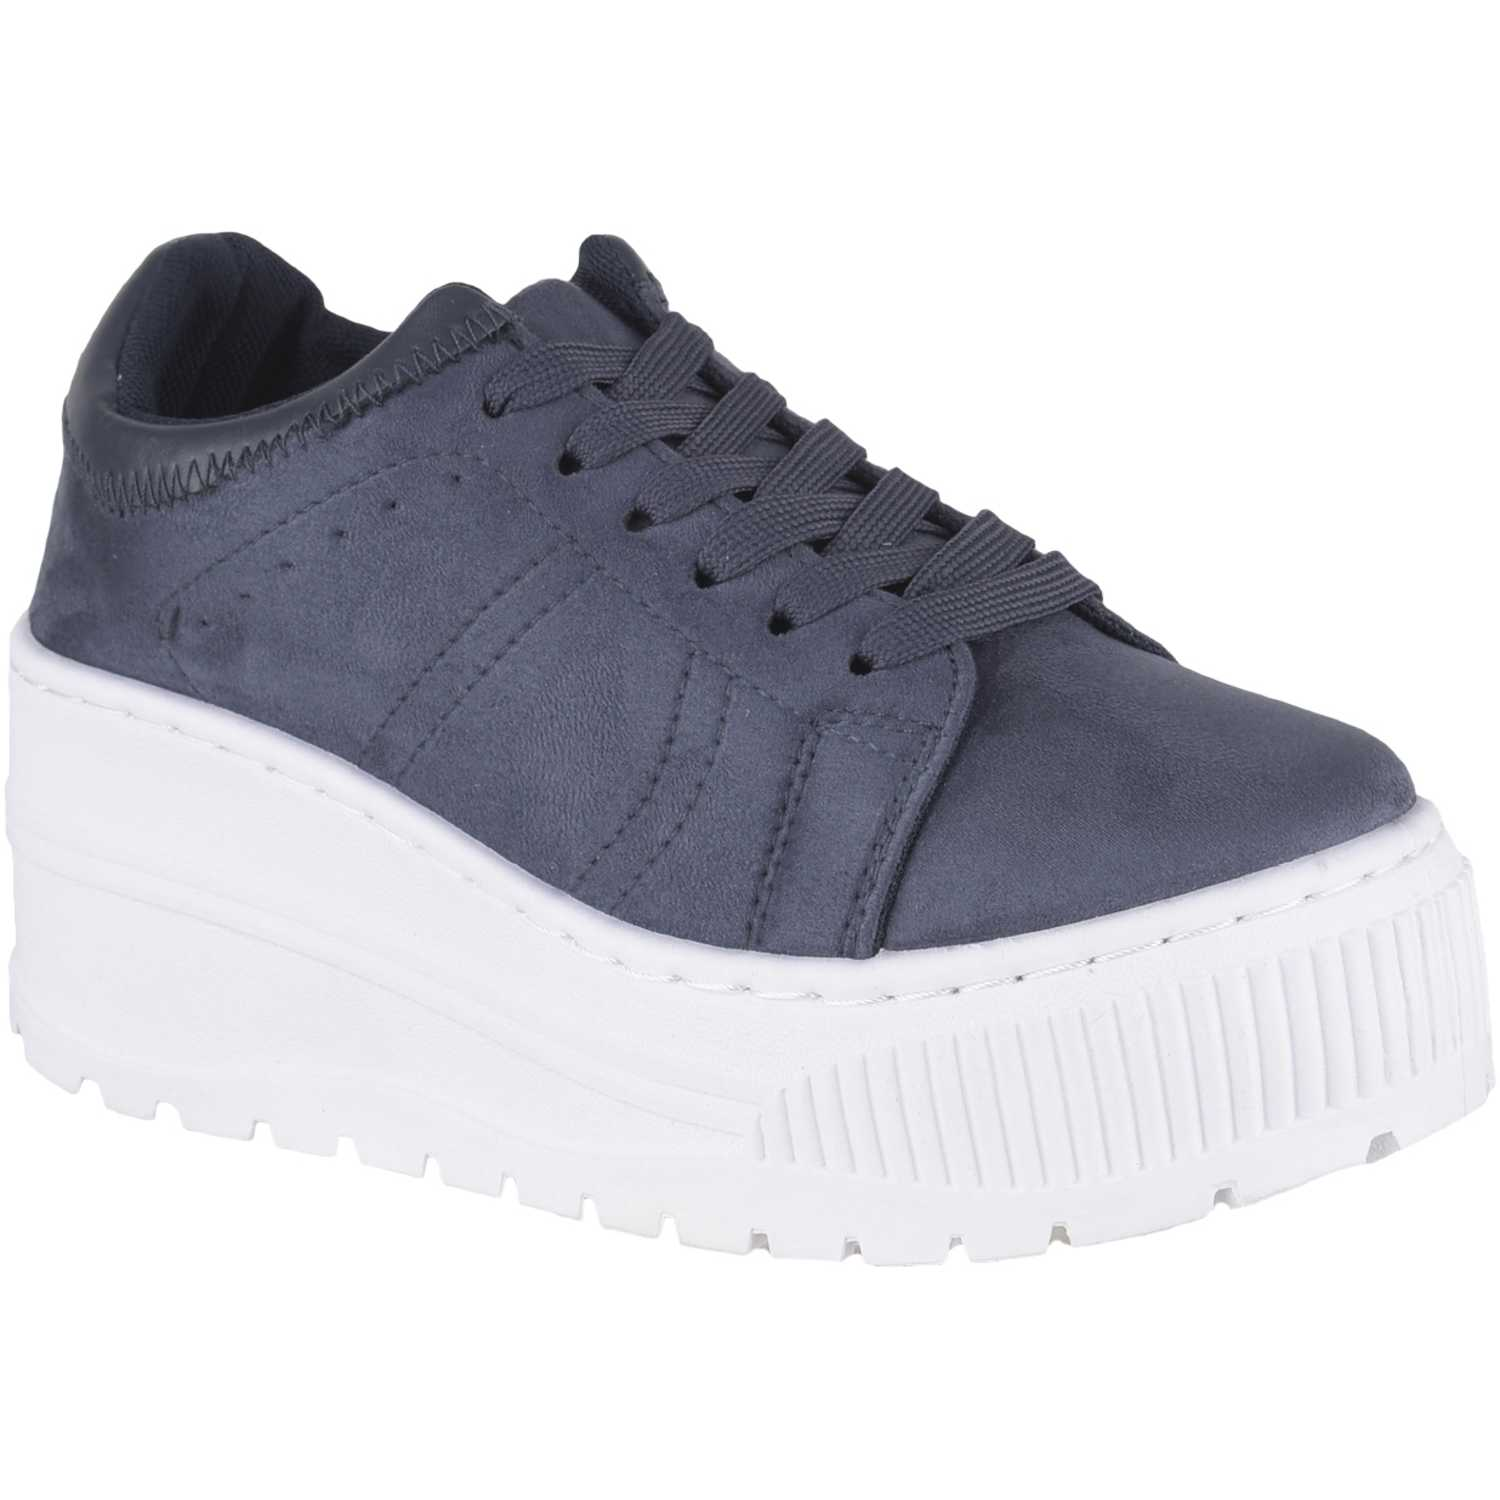 Just4u Zw 7c02 Azul Zapatillas Fashion